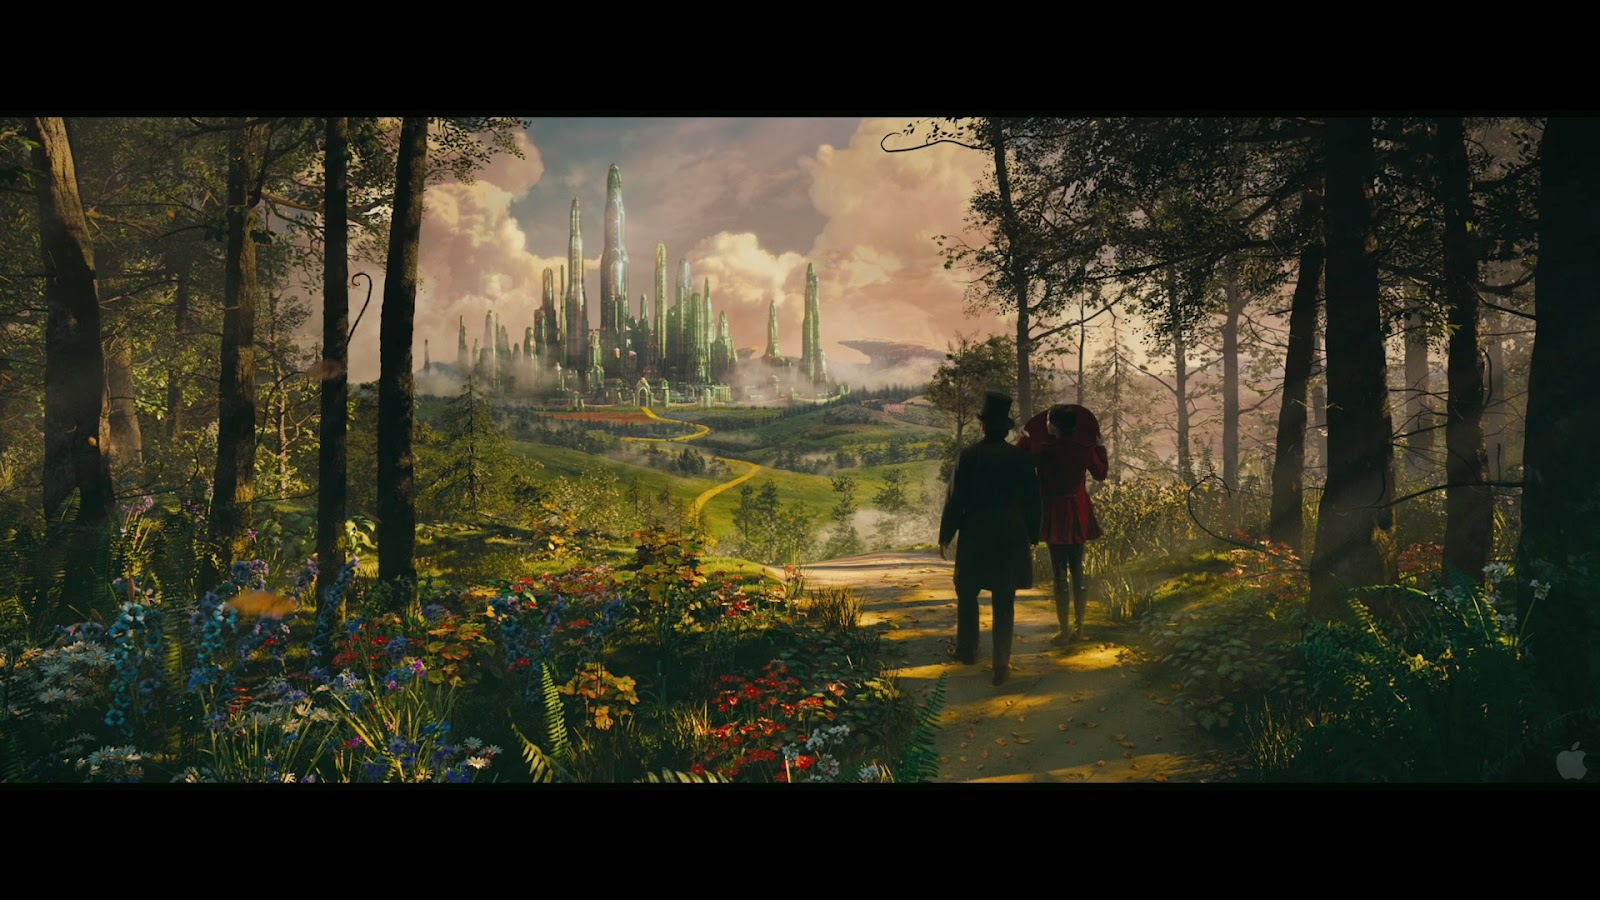 Oz The Great and Powerful 3D Movie Free Wallpapers